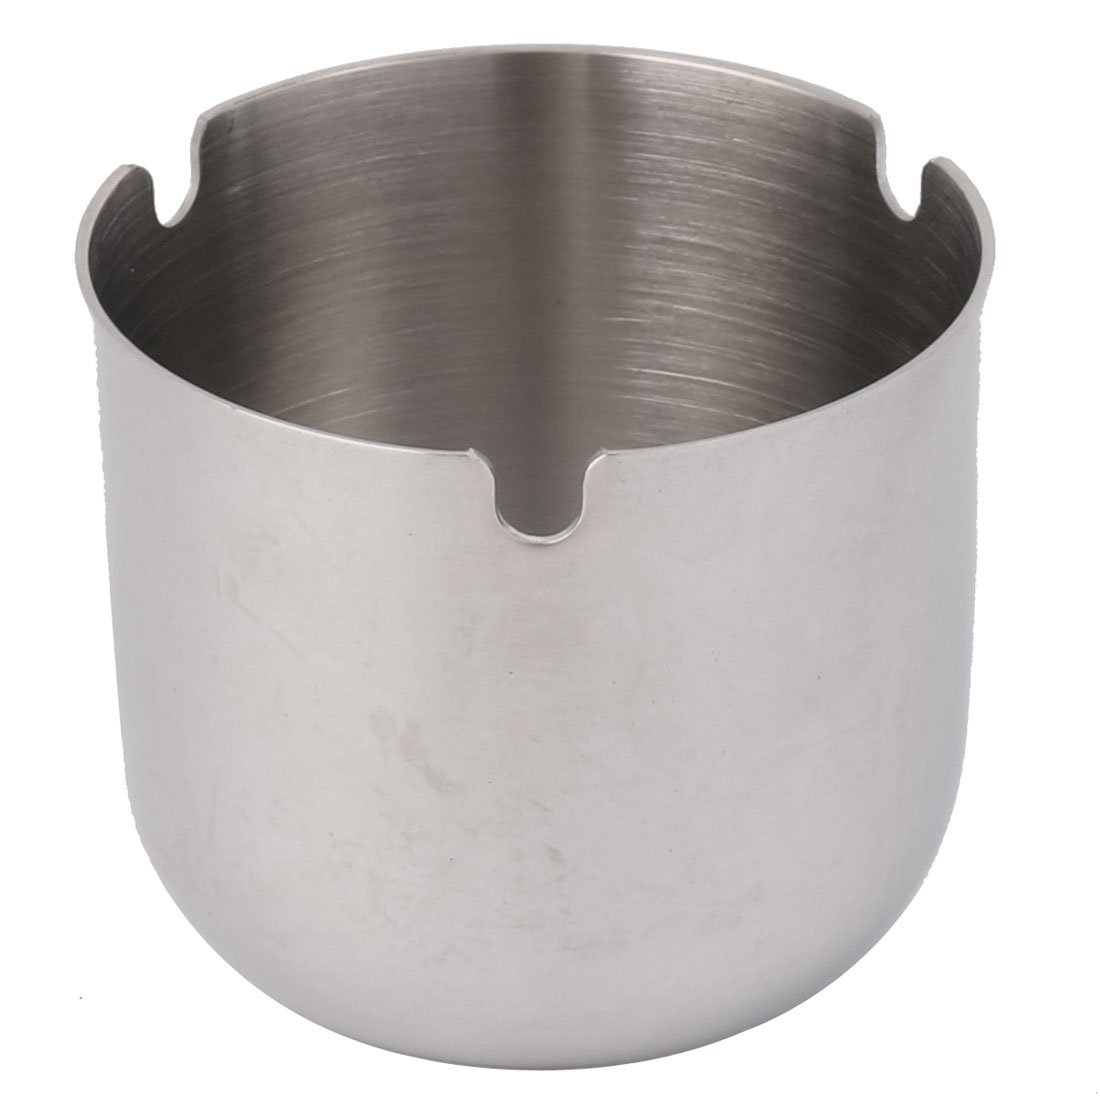 Home Office Stainless Steel Cylindrical Shaped Cigarette Holder Ashtray 8cm Dia